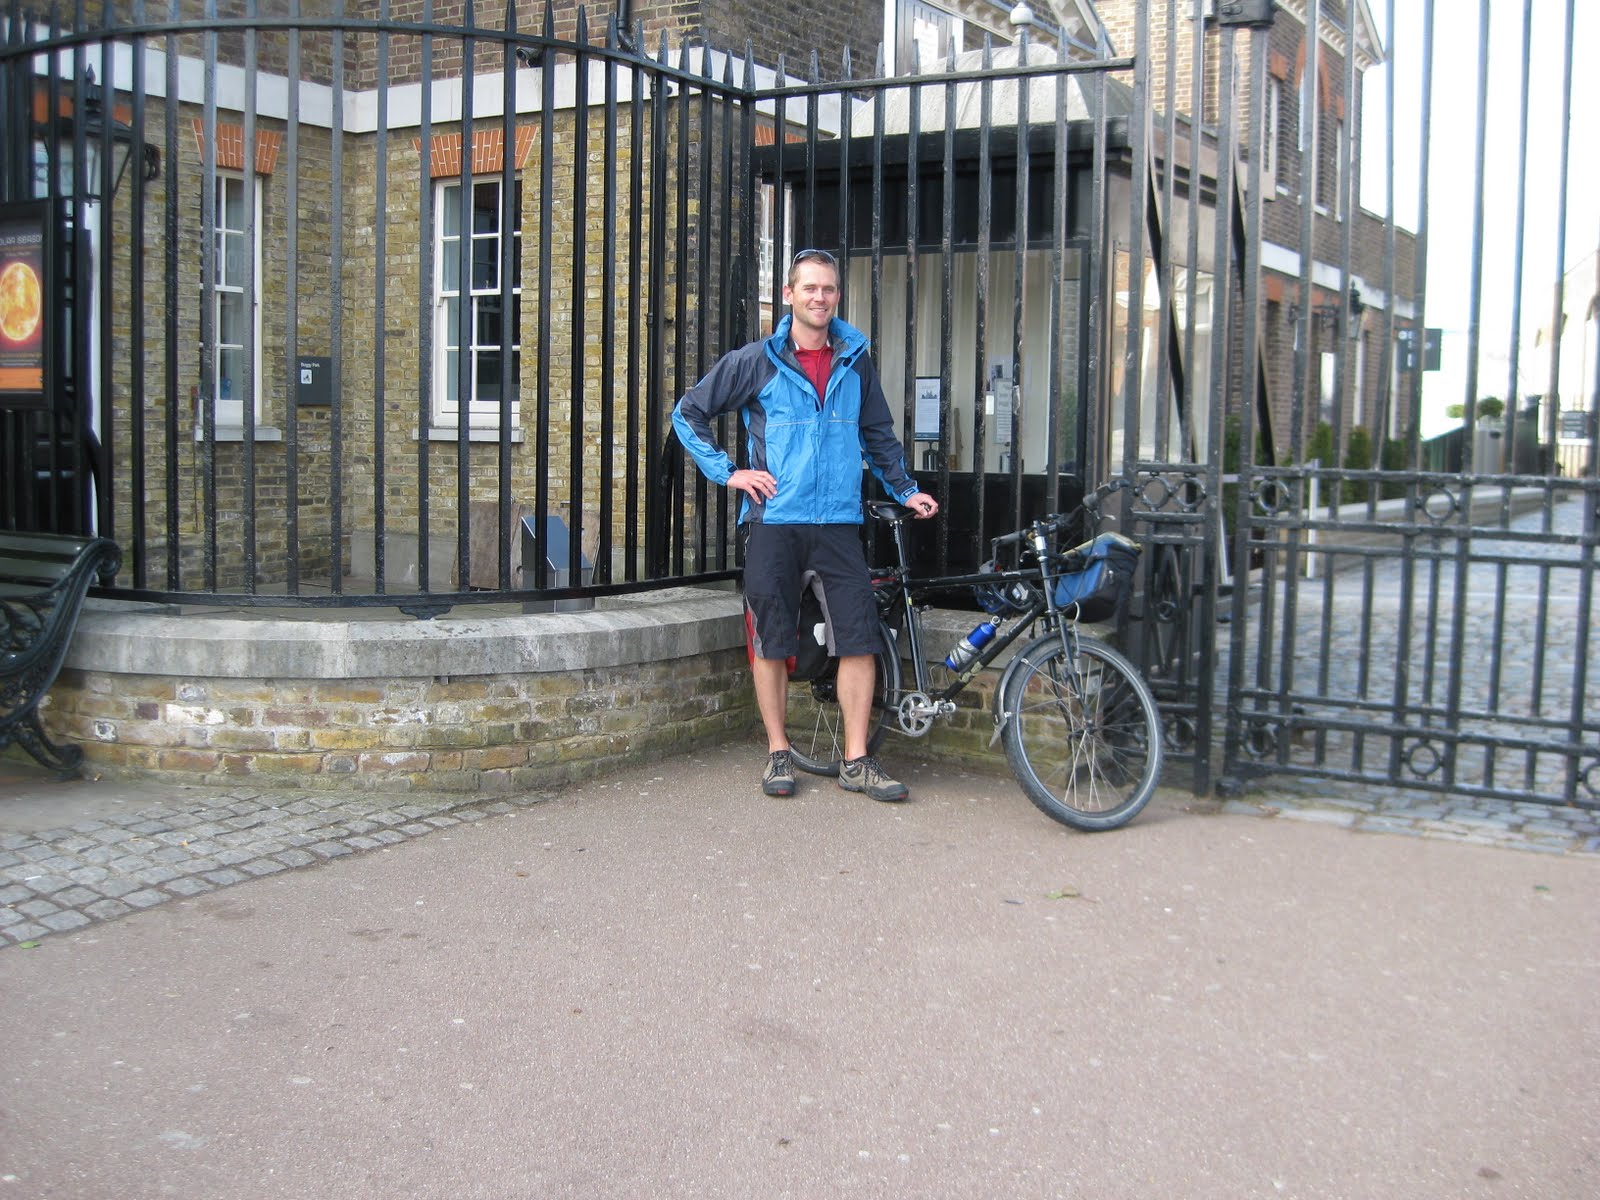 Just outside the Royal Observatory, having completed the first lap